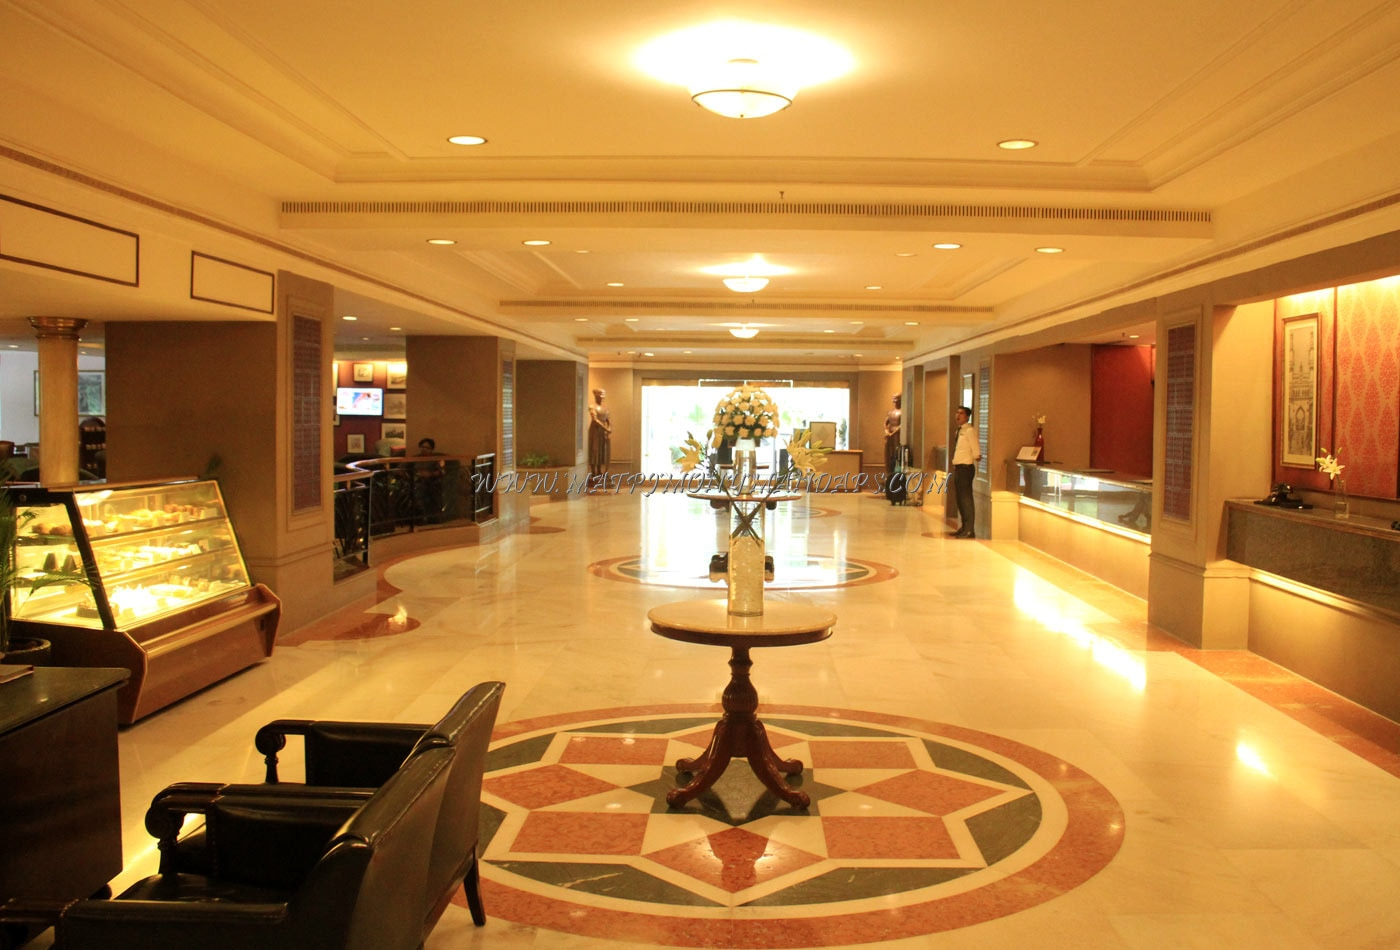 Find the availability of the Taj Banjara Hyderabad Mehfil  And Majlis (A/C) in Banjara Hills, Hyderabad and avail special offers